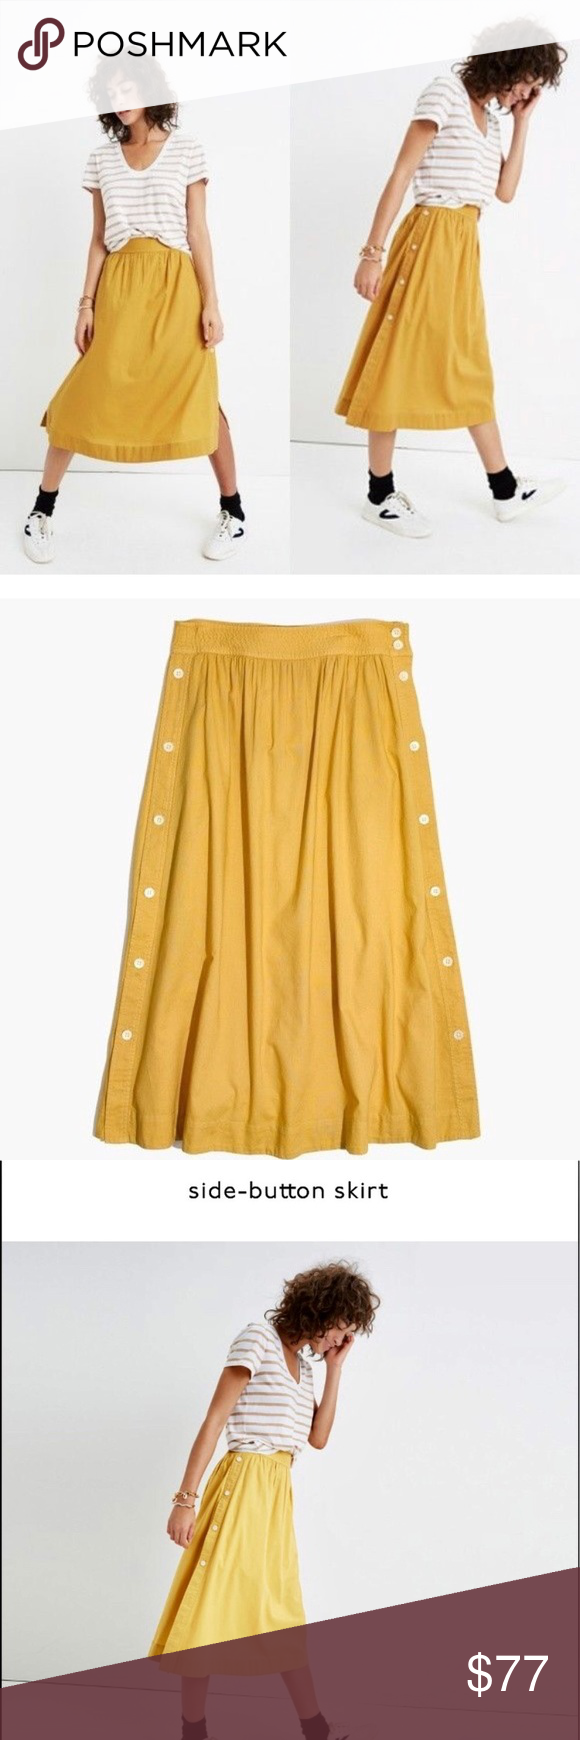 a0ebeb96f Madewell Cumin side button skirt Stock photos for reference only.Not as  bright yellow but